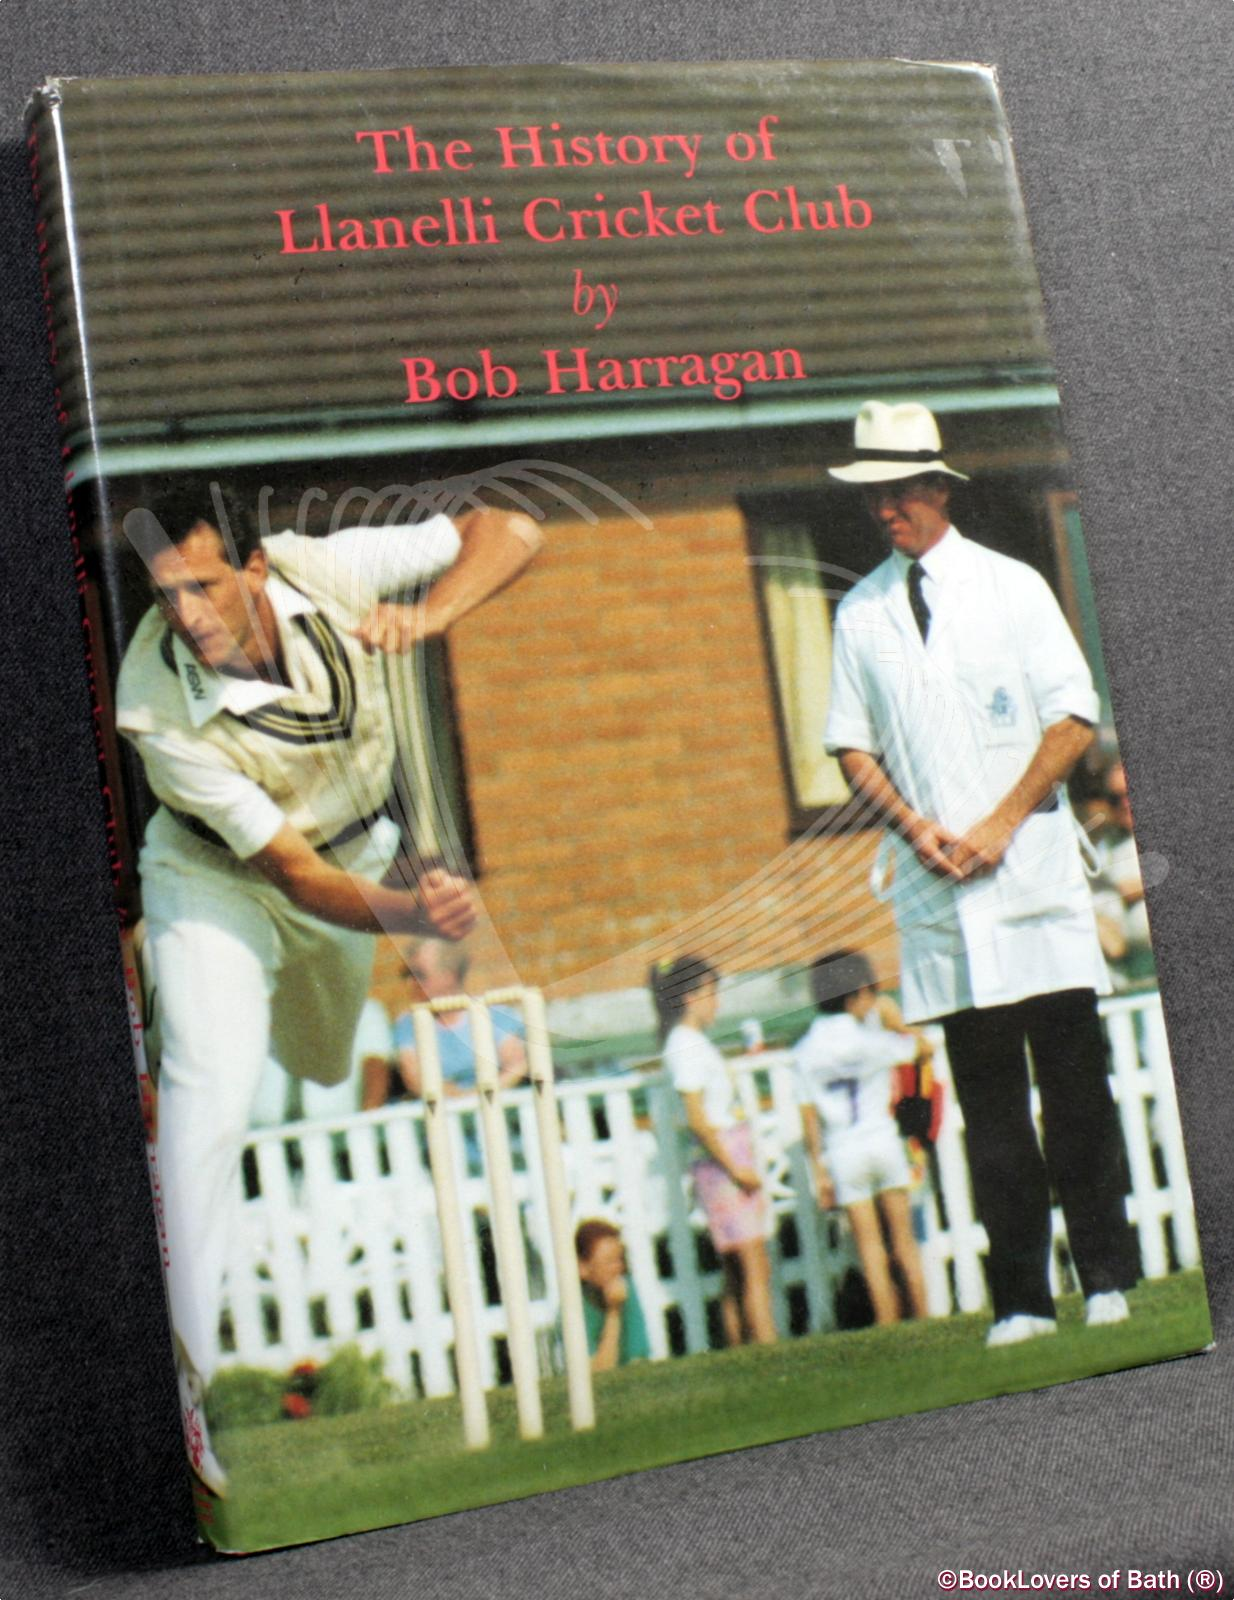 The History of Llanelli Cricket Club - Bob Harragan